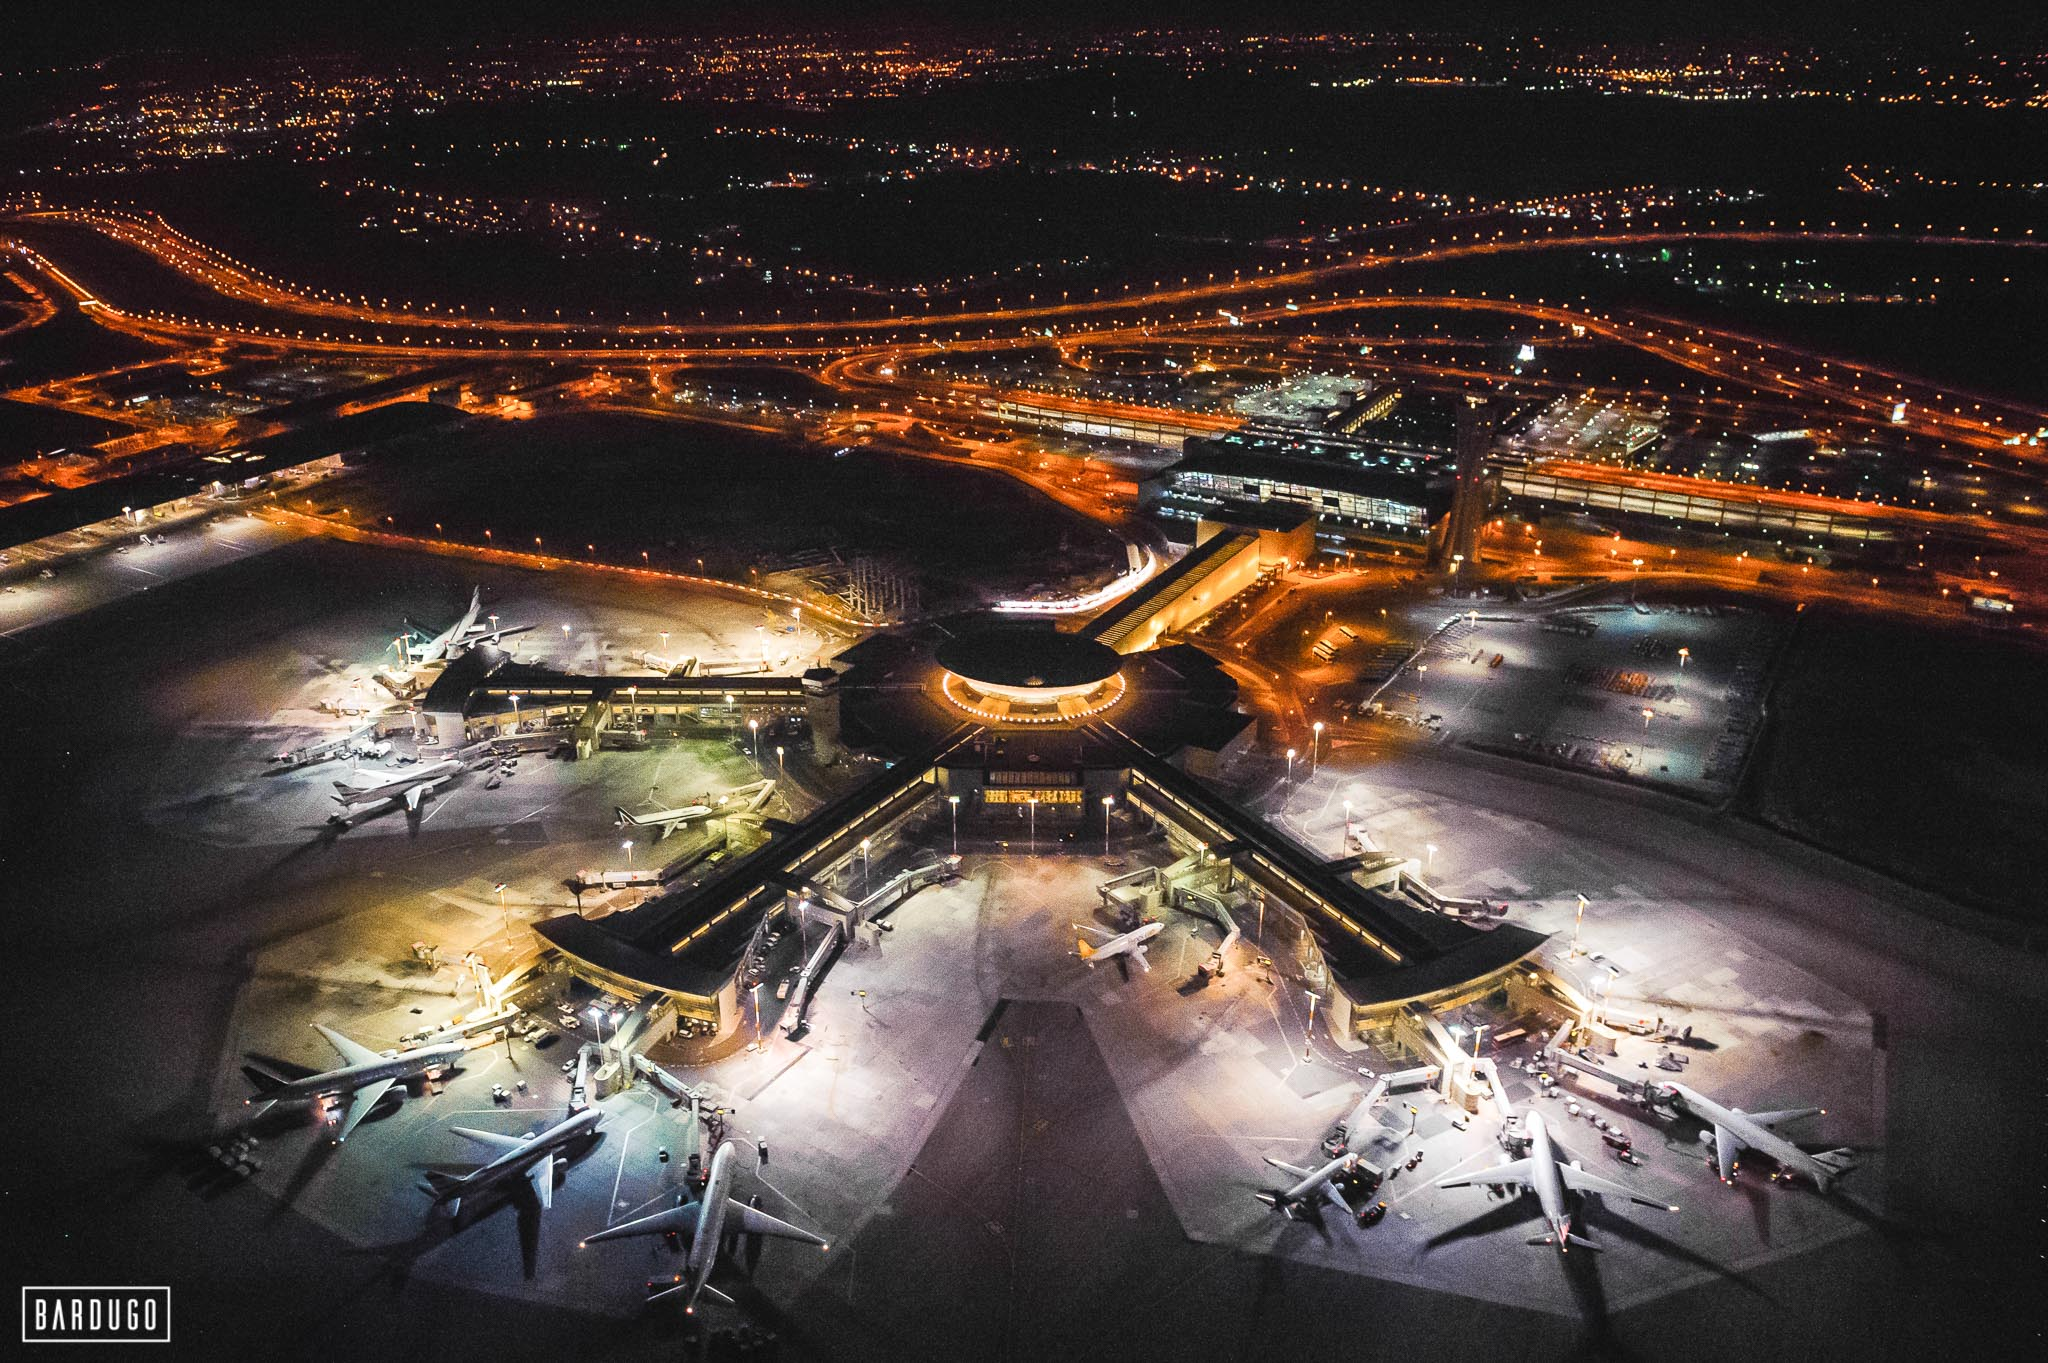 Airport at Nighttime